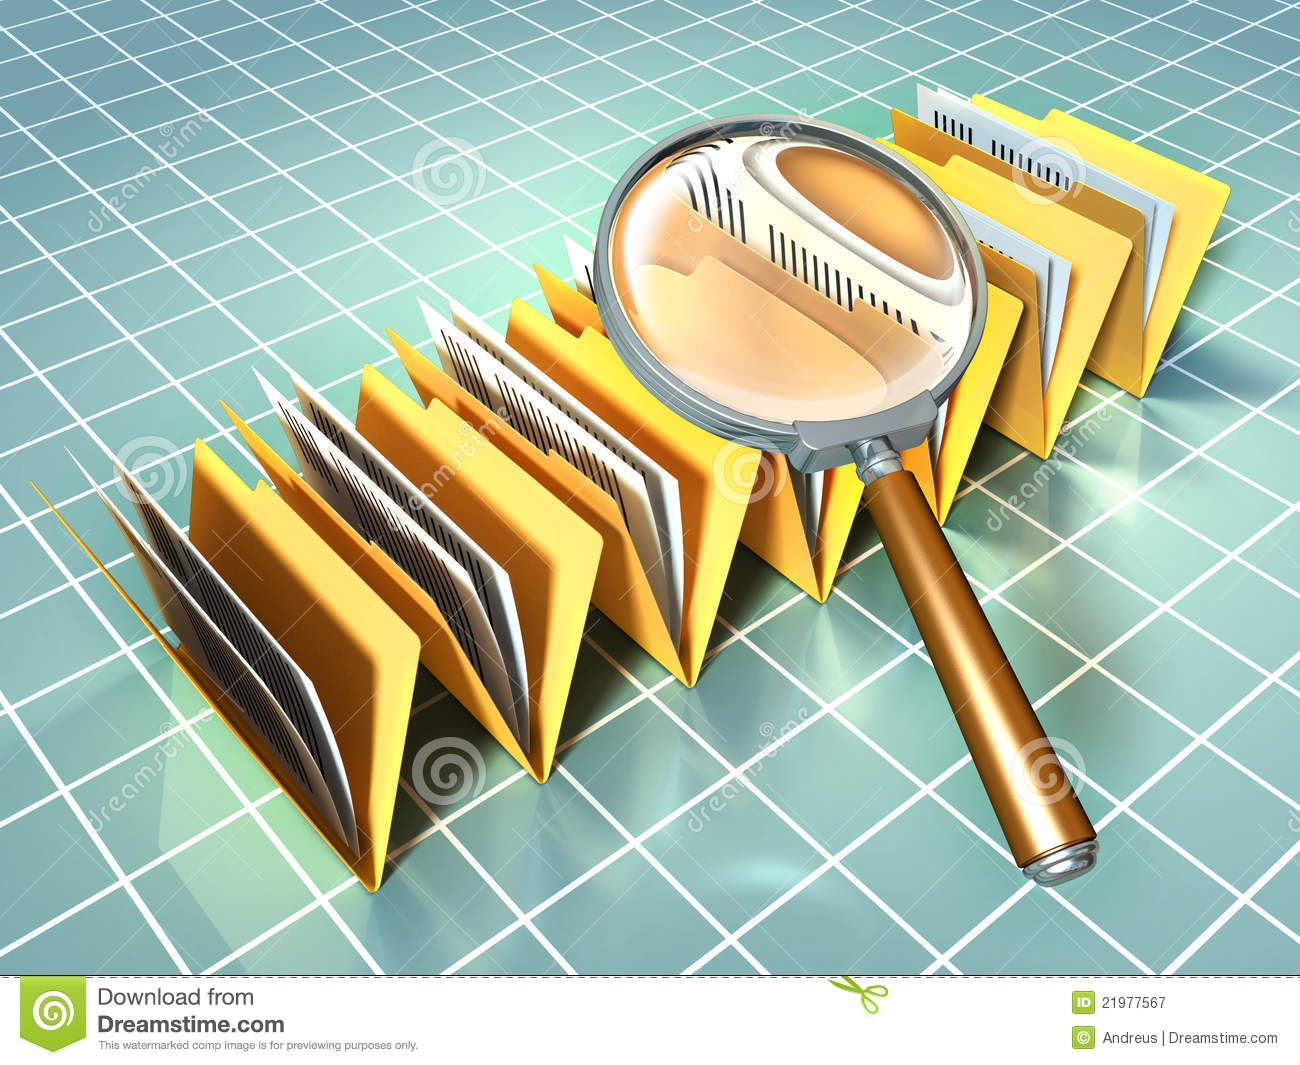 Some document folders under a magnifying glass. Digital illustration.